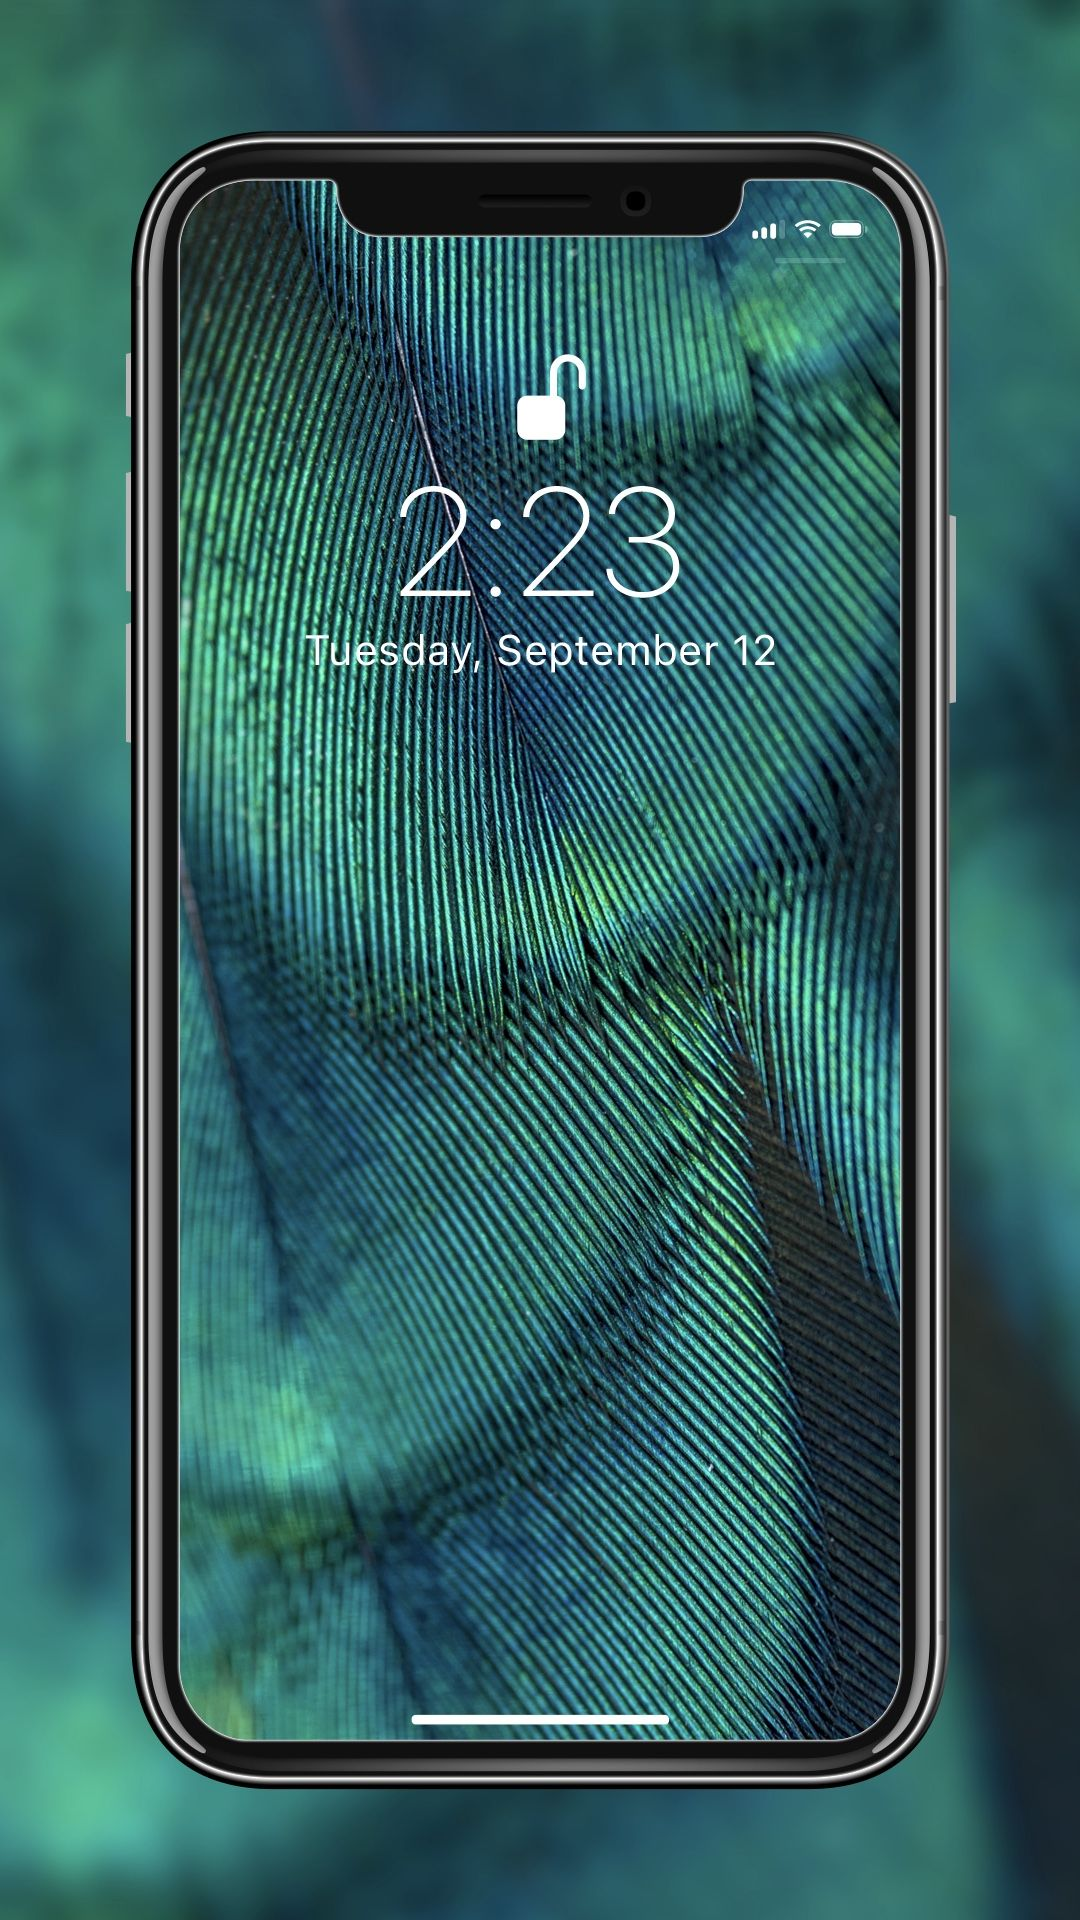 Amazing wallpaper for your iPhone 8 from Everpix🤩